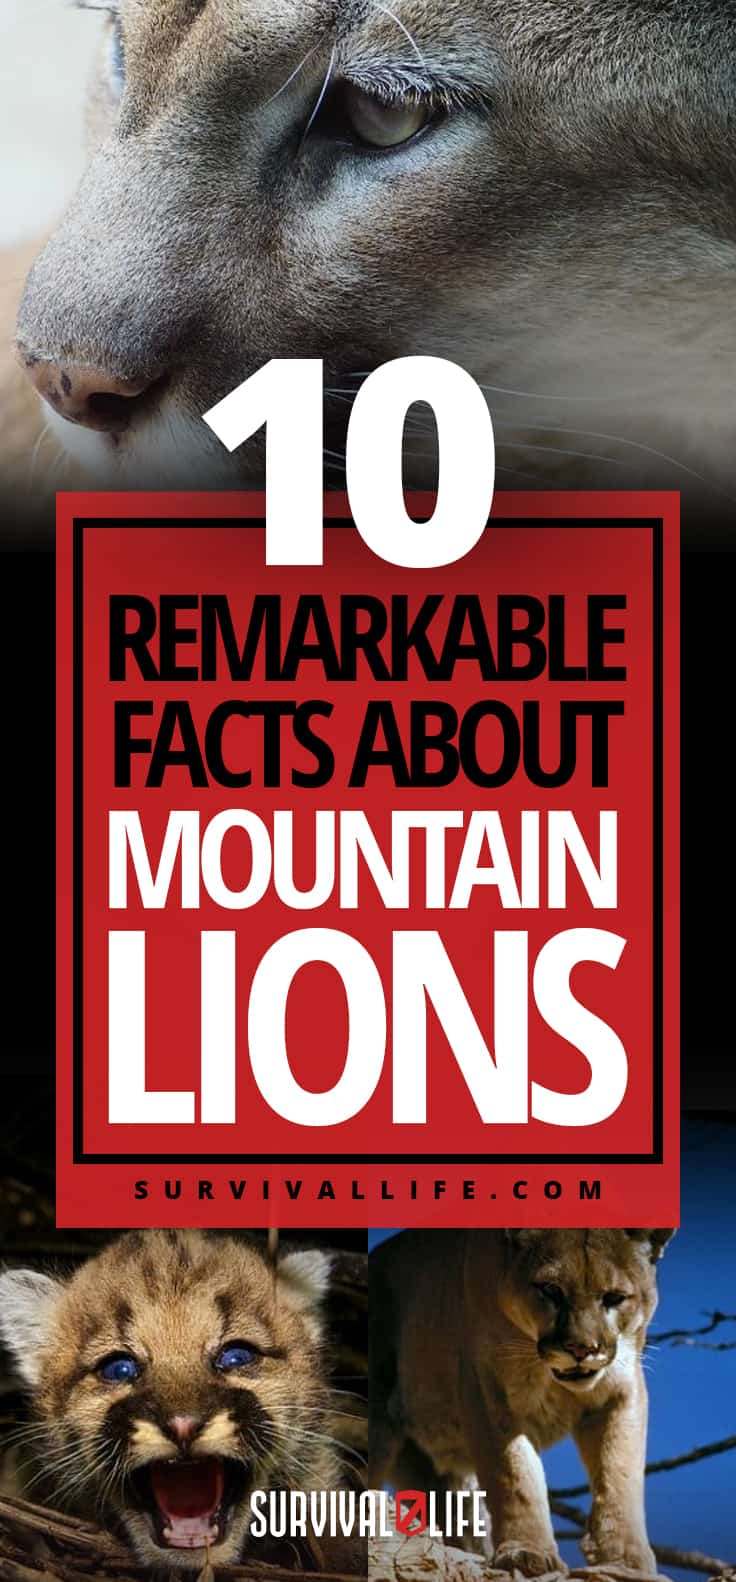 Remarkable Facts About Mountain Lions | https://survivallife.com/facts-about-mountain-lions/